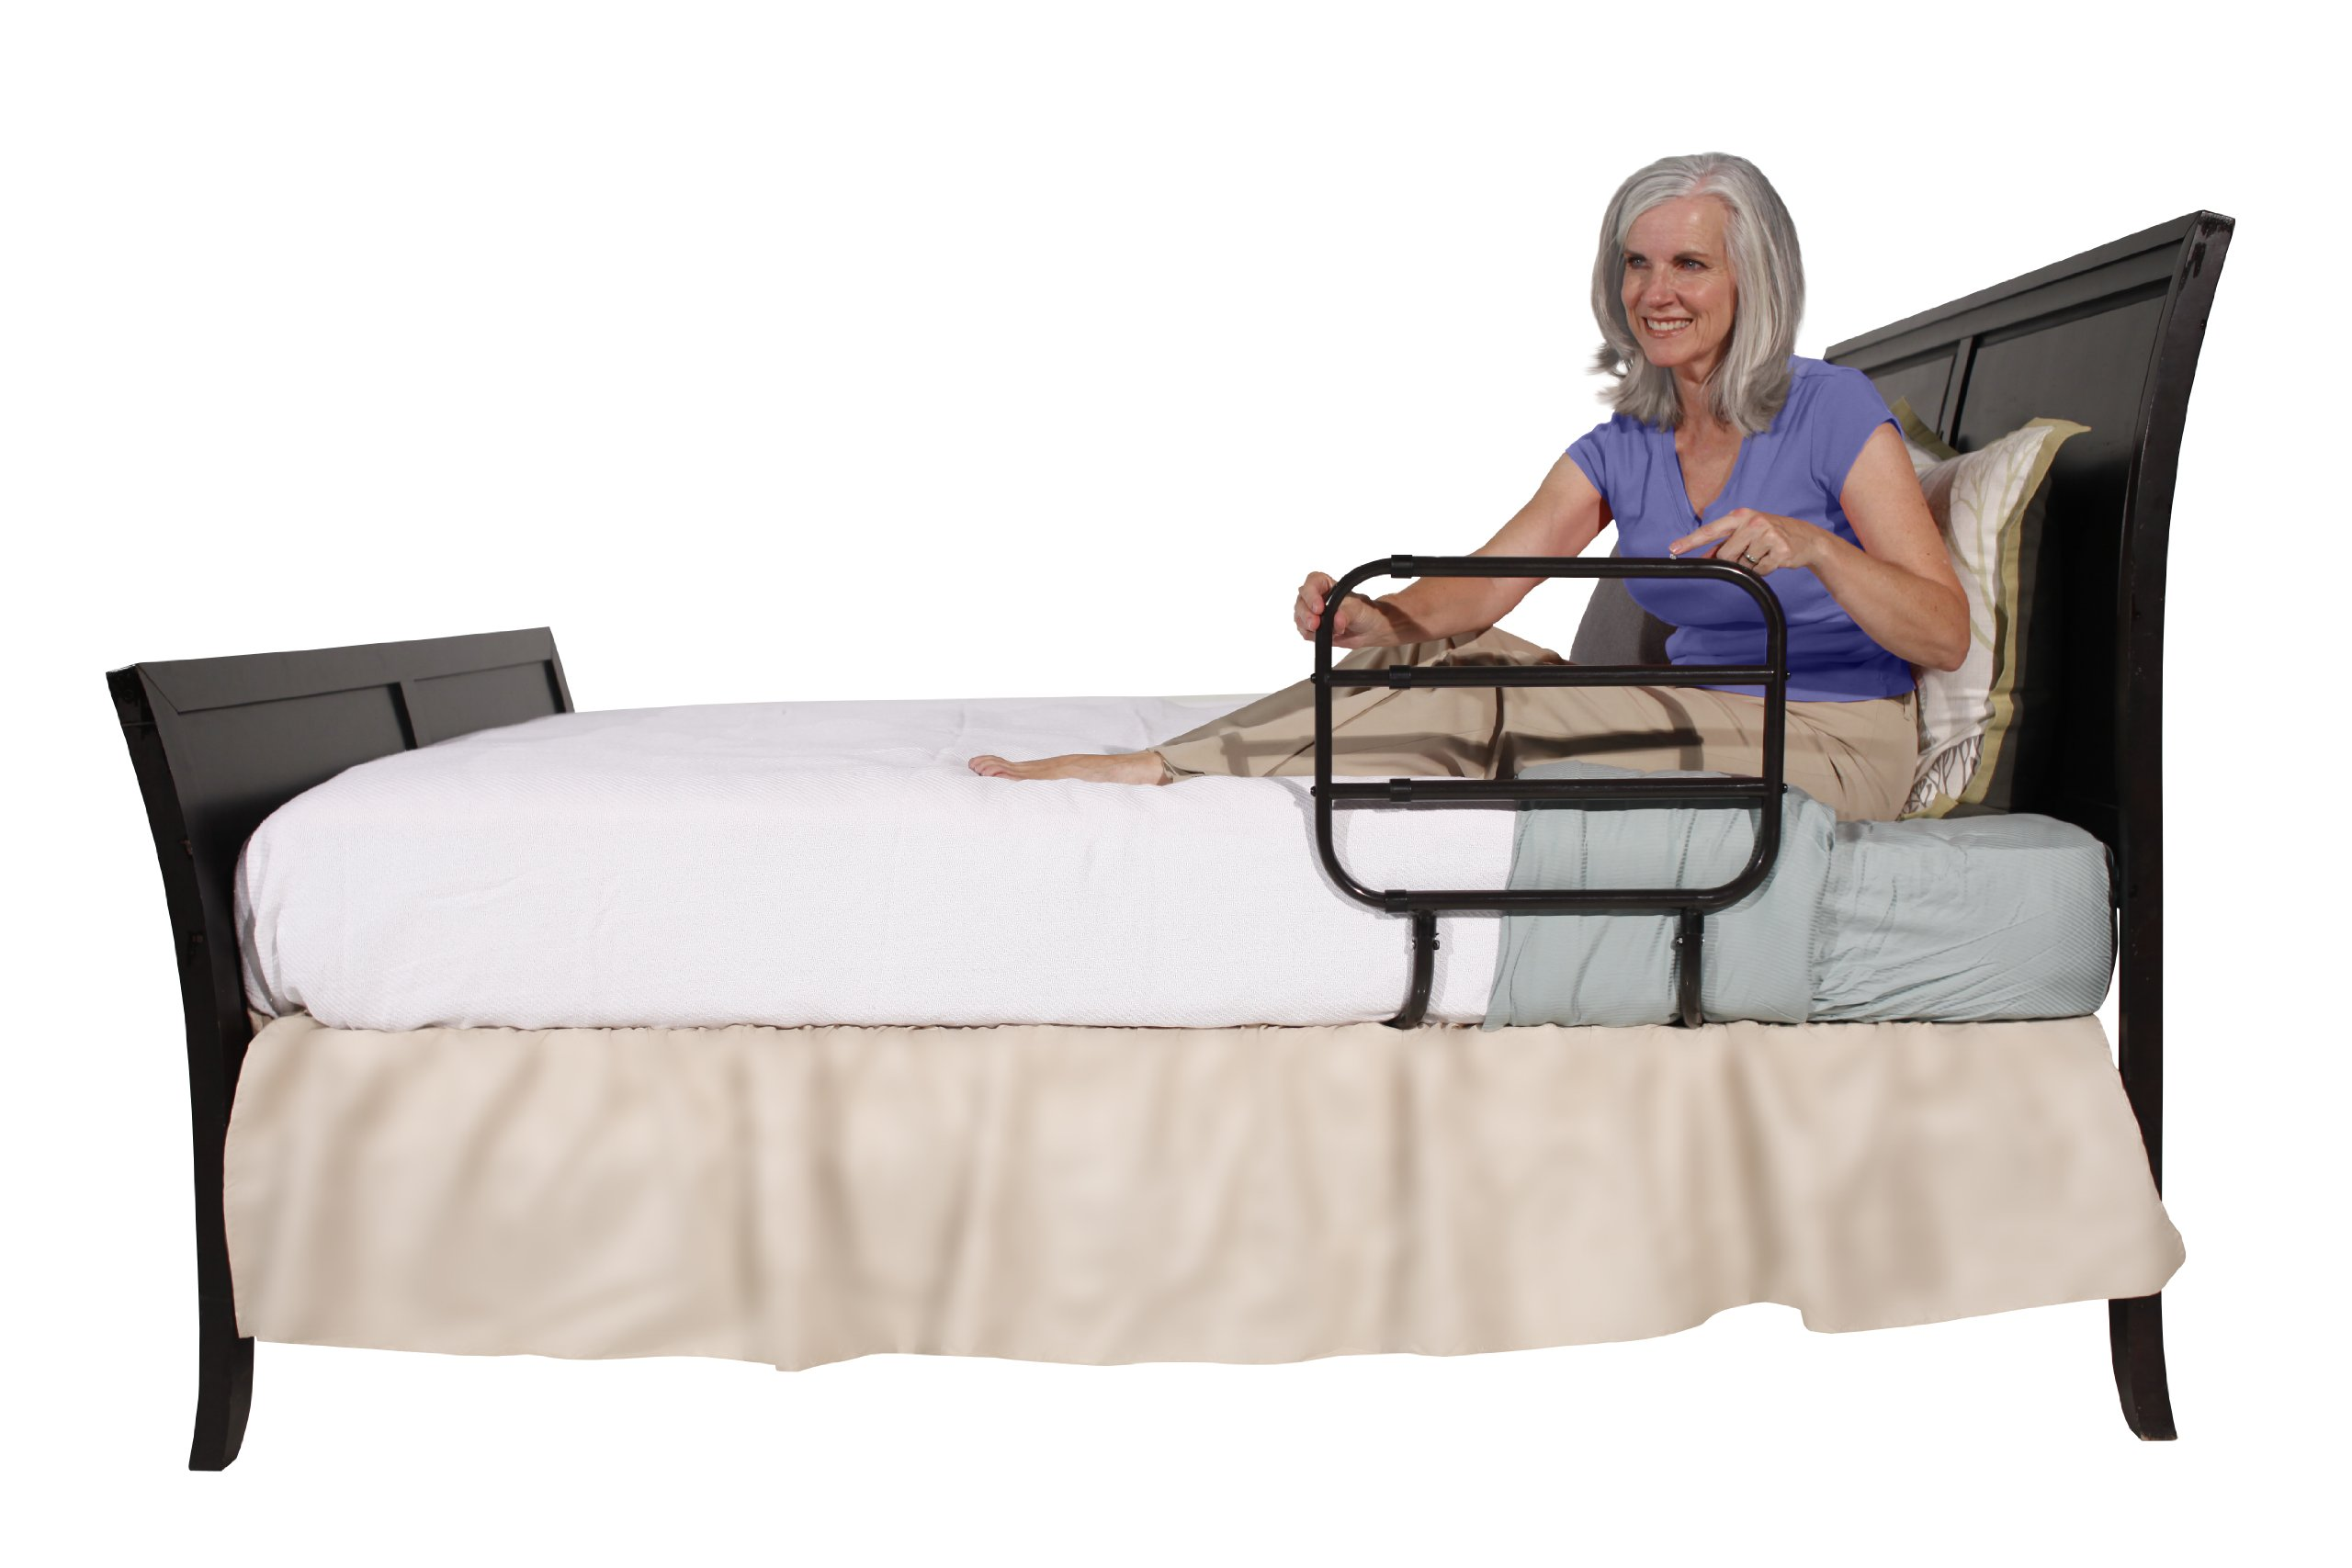 Galleon Able Life Bedside Extend A Rail Adjustable